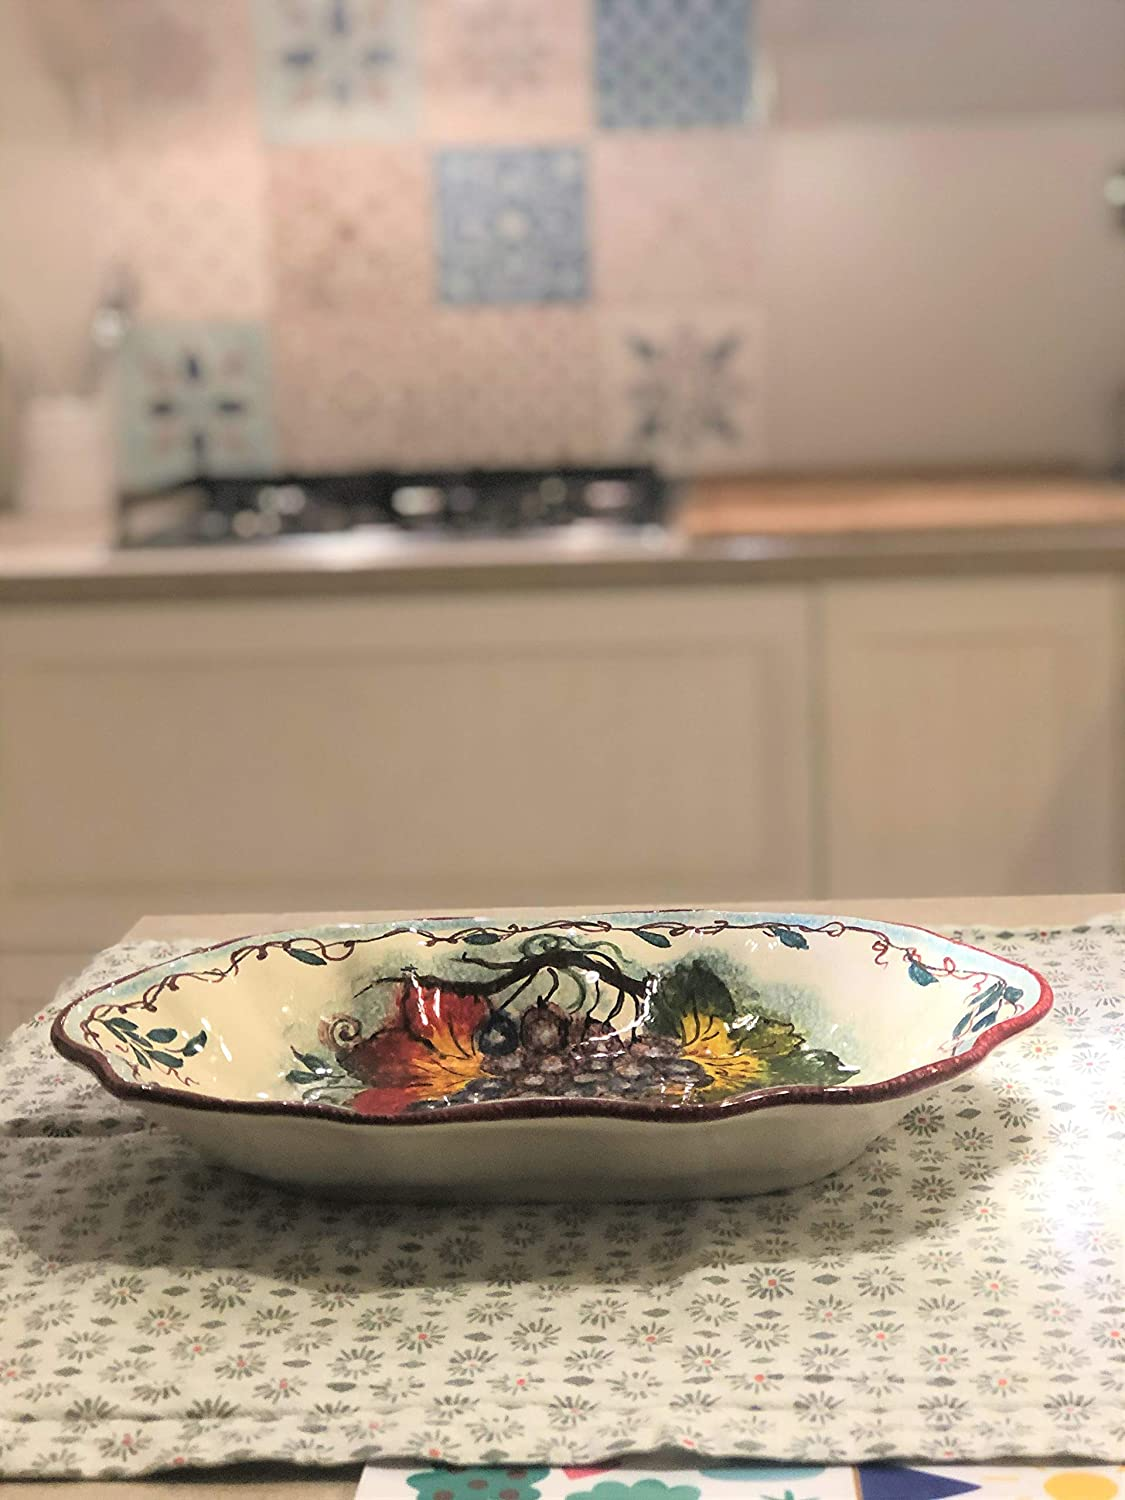 CERAMICHE DARTE PARRINI Italian Ceramic Art Pottery Serving Bowl Centerpieces Tray Plate Hand Painted Decorated Grape Made in ITALY Tuscan